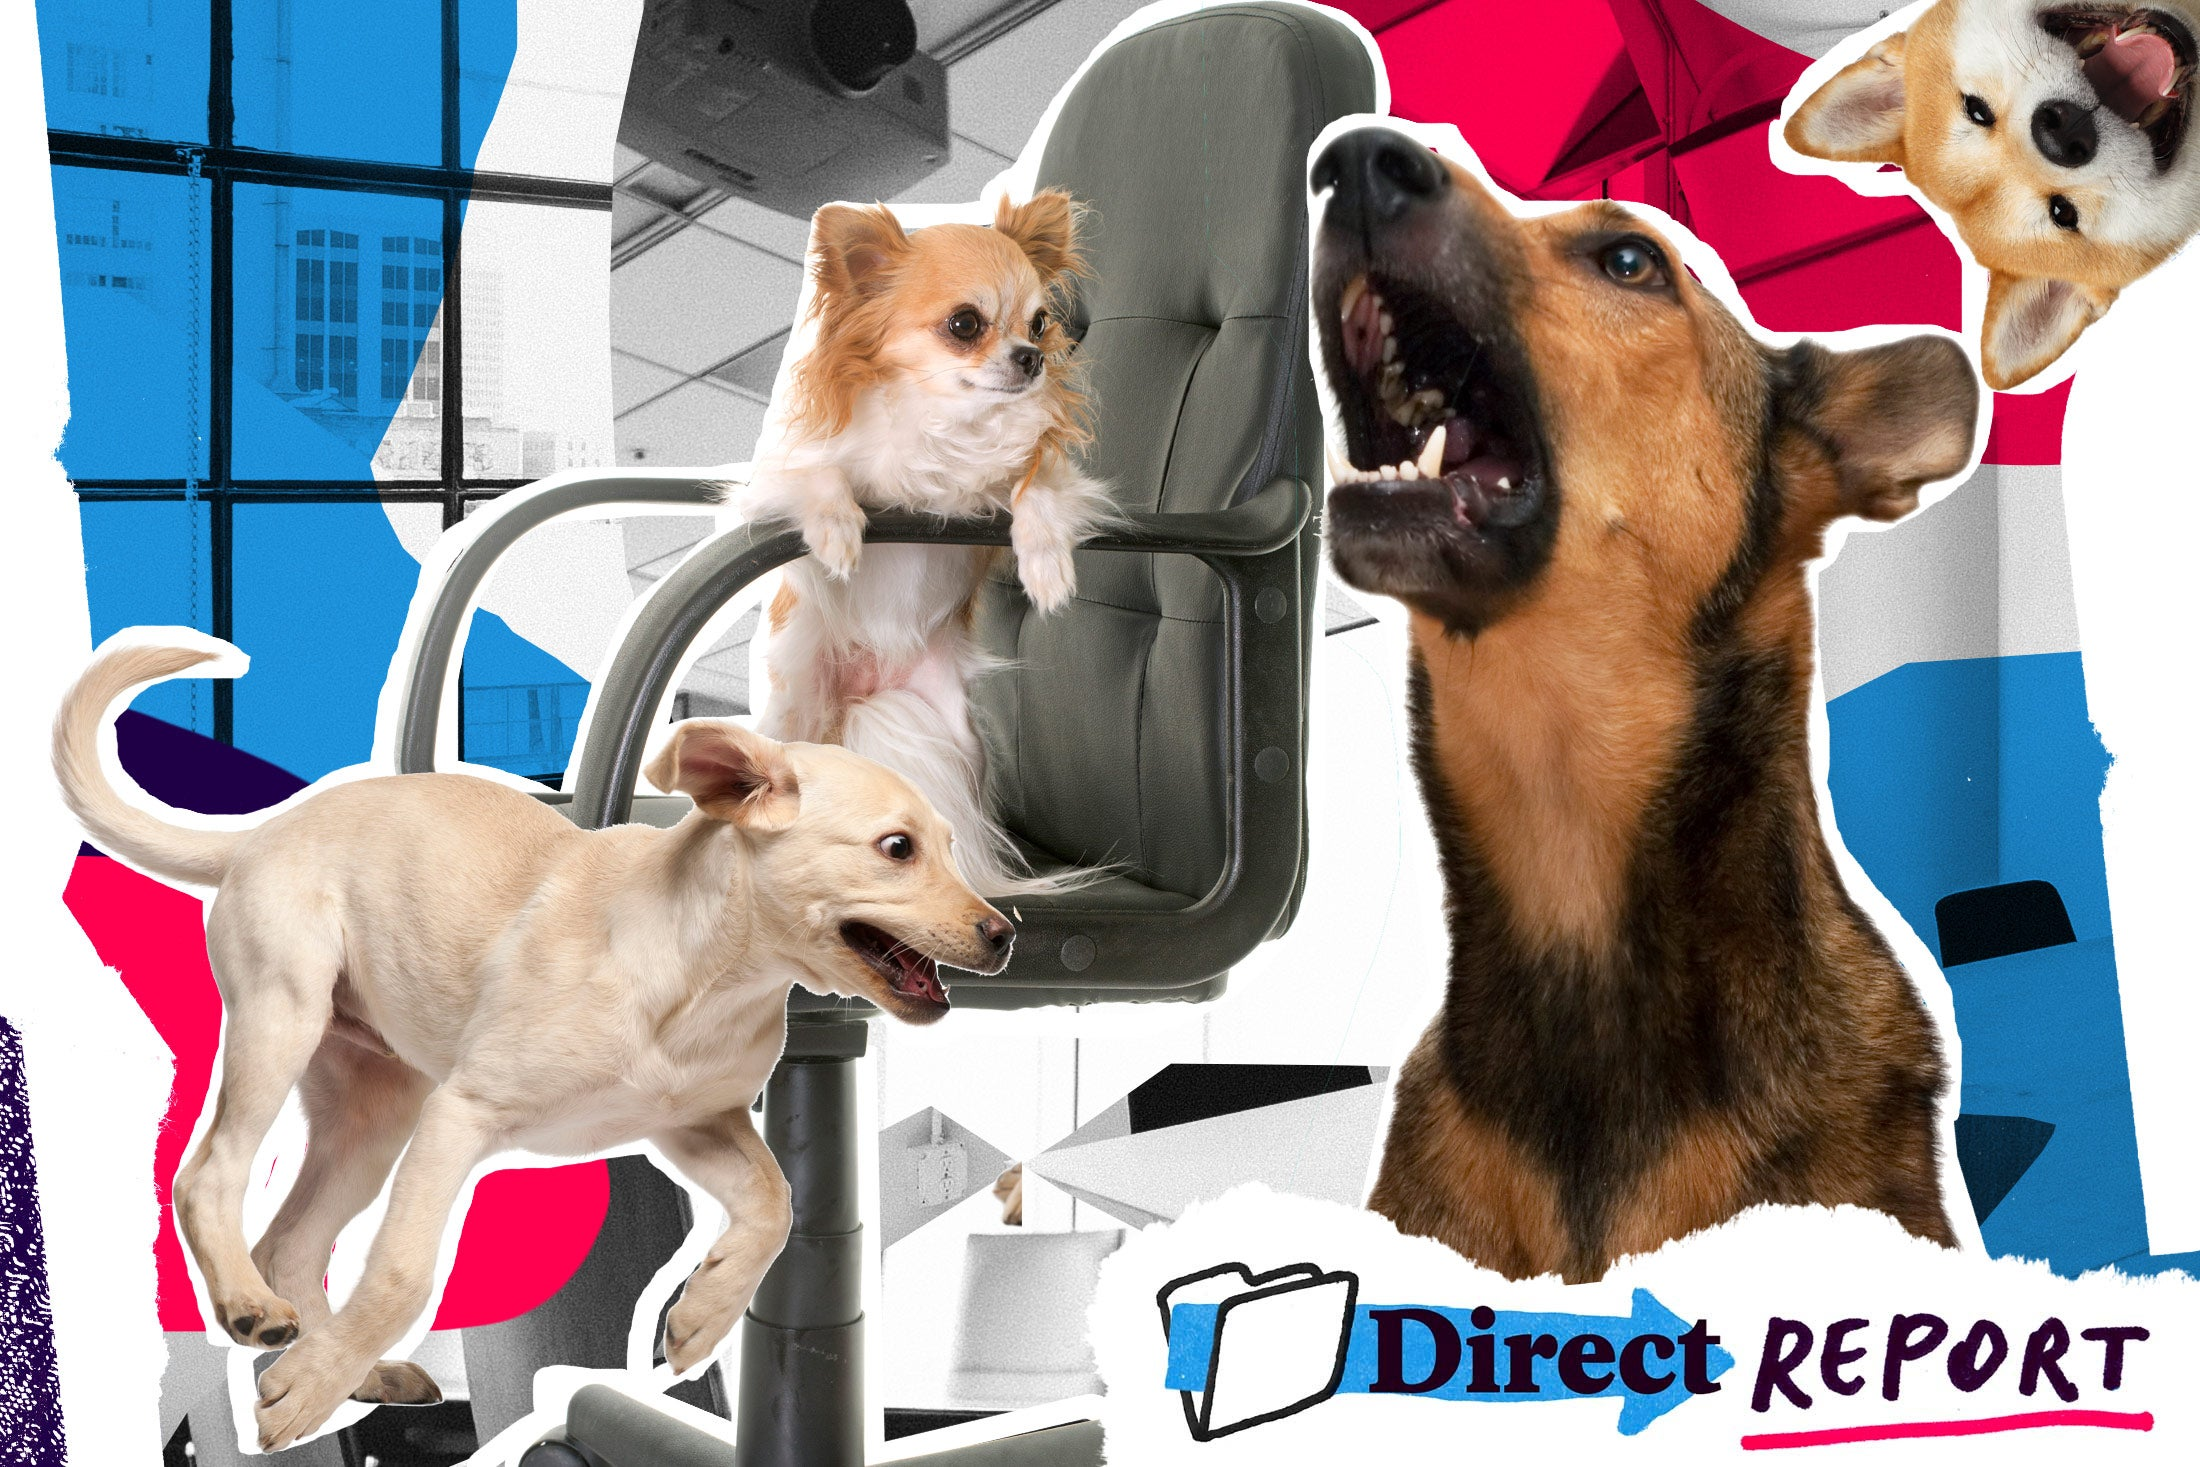 Photo illustration of dogs. Lots of dogs. Dogs running, dogs barking, dog in an office chair, dogs with playful expressions. They're all good dogs.